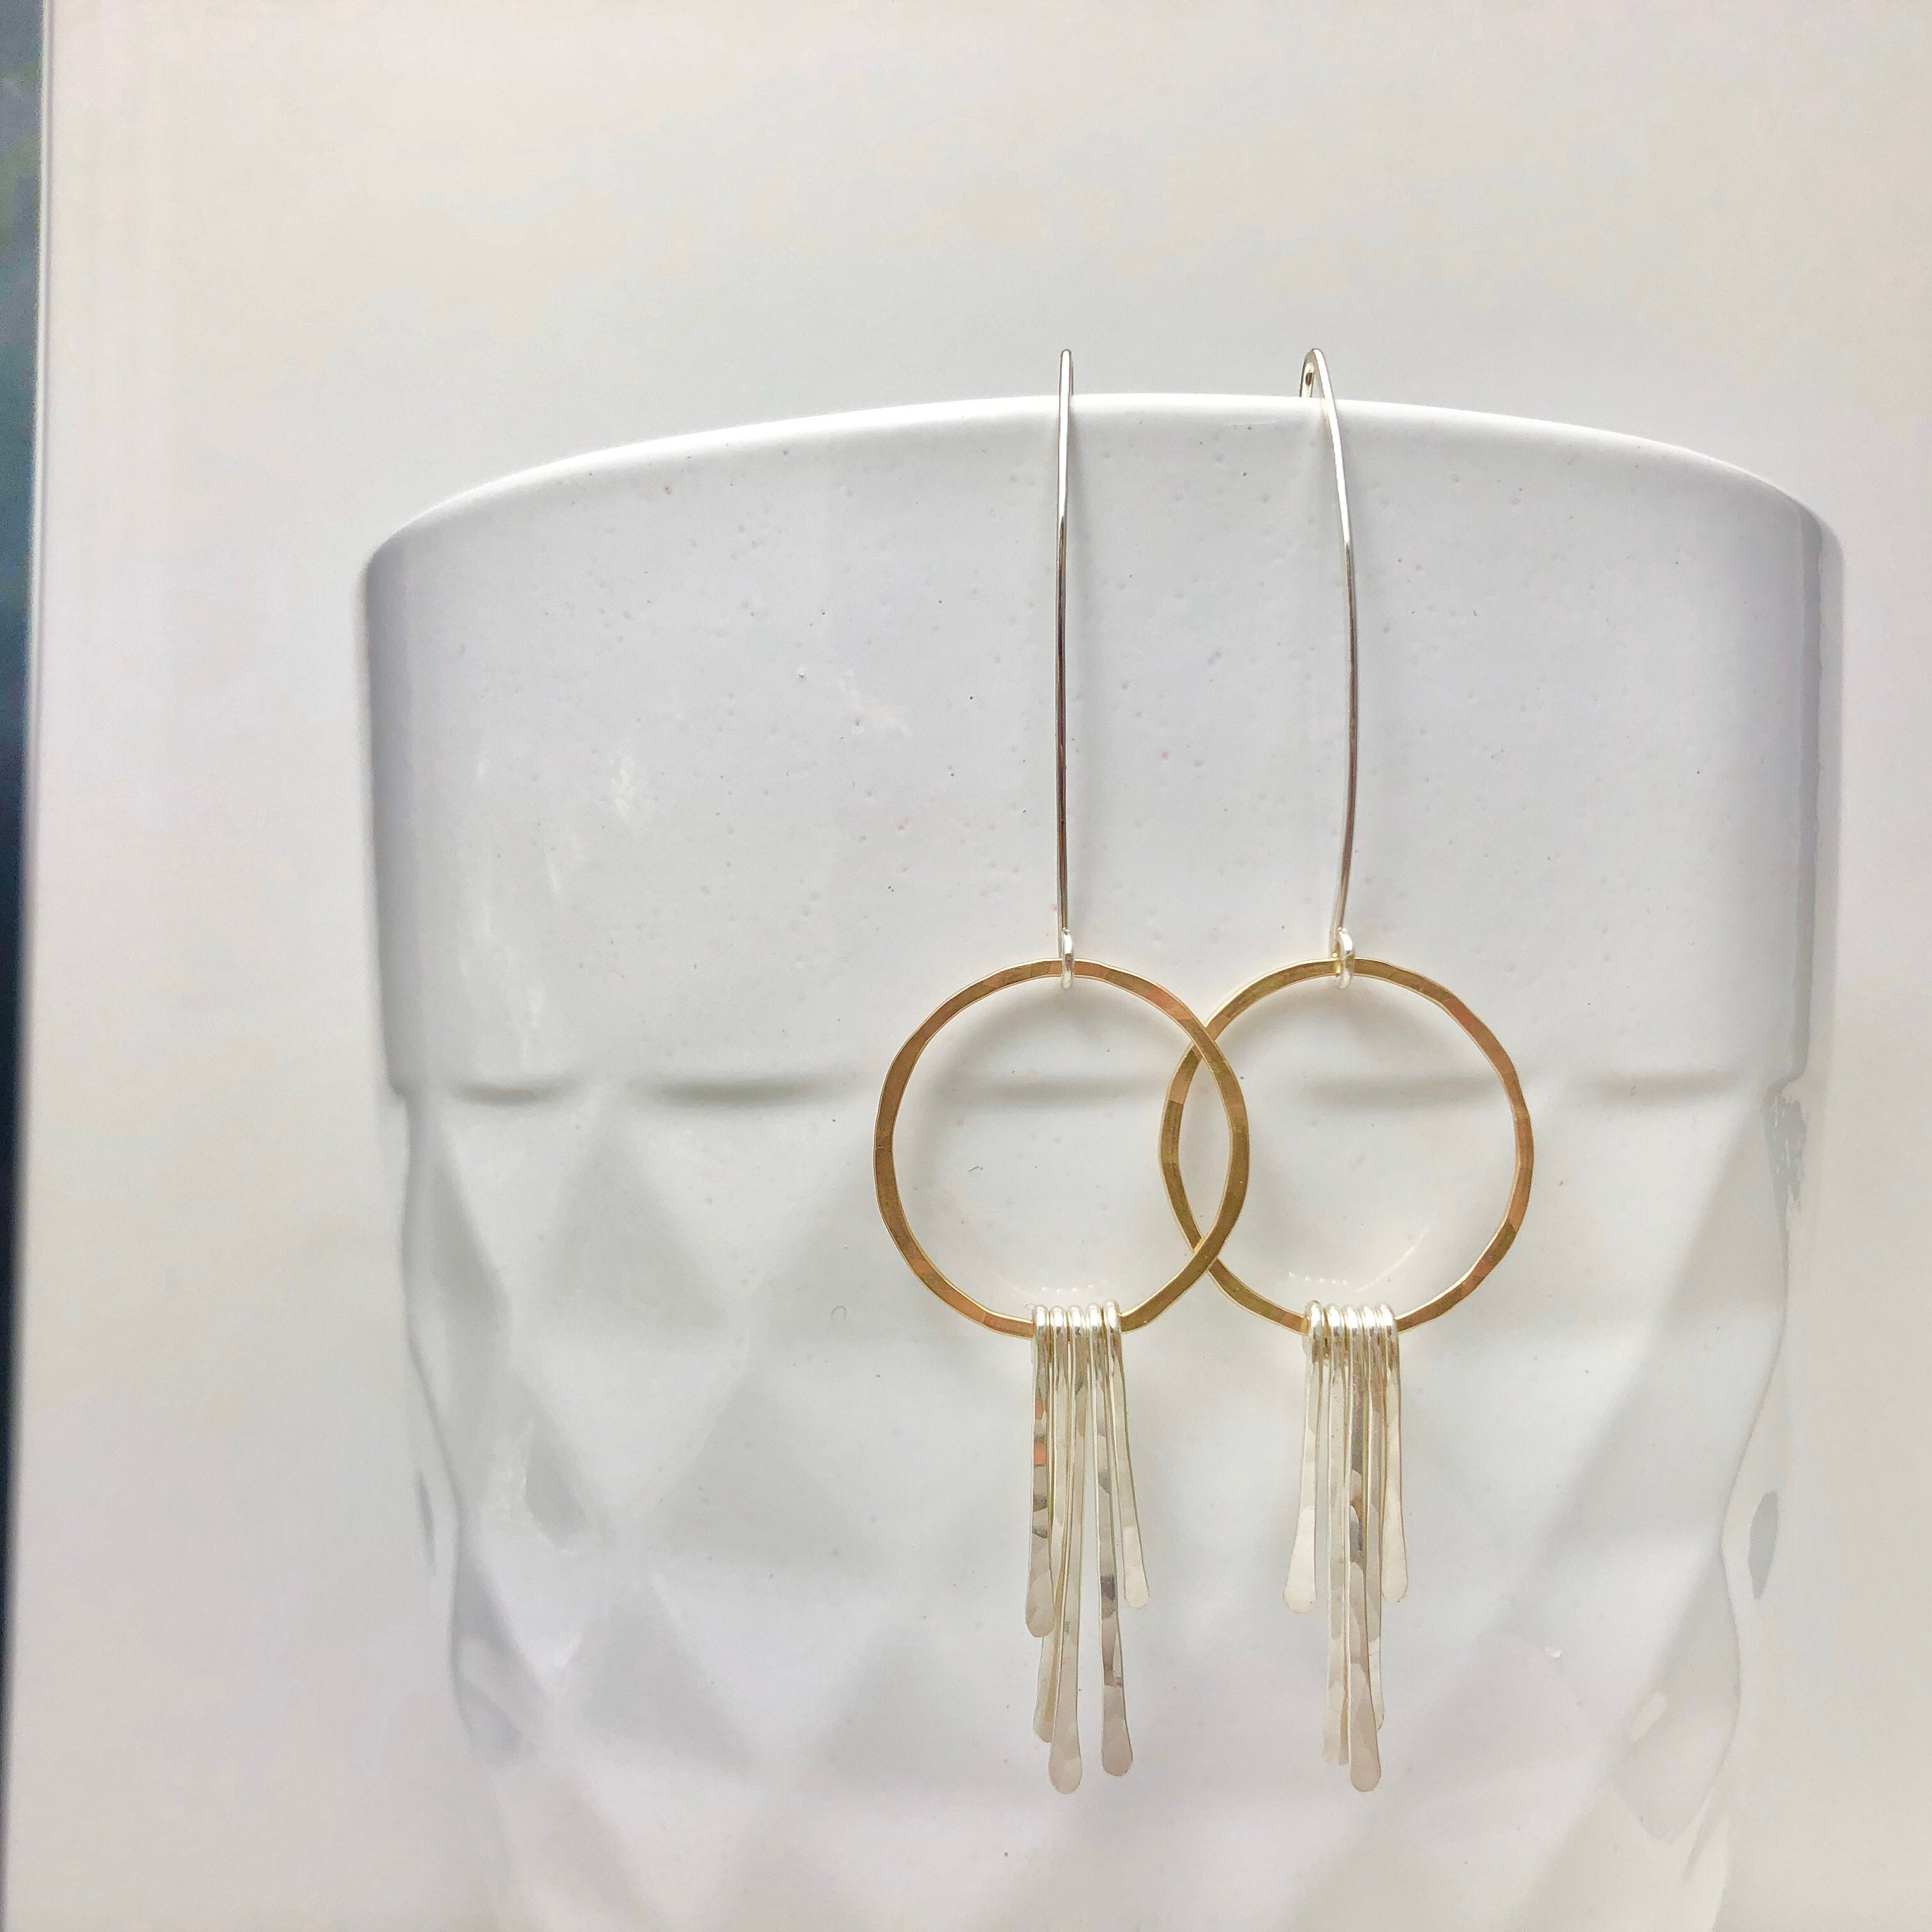 Gold Hoop Earrings with Sterling Silver Bar Fringe